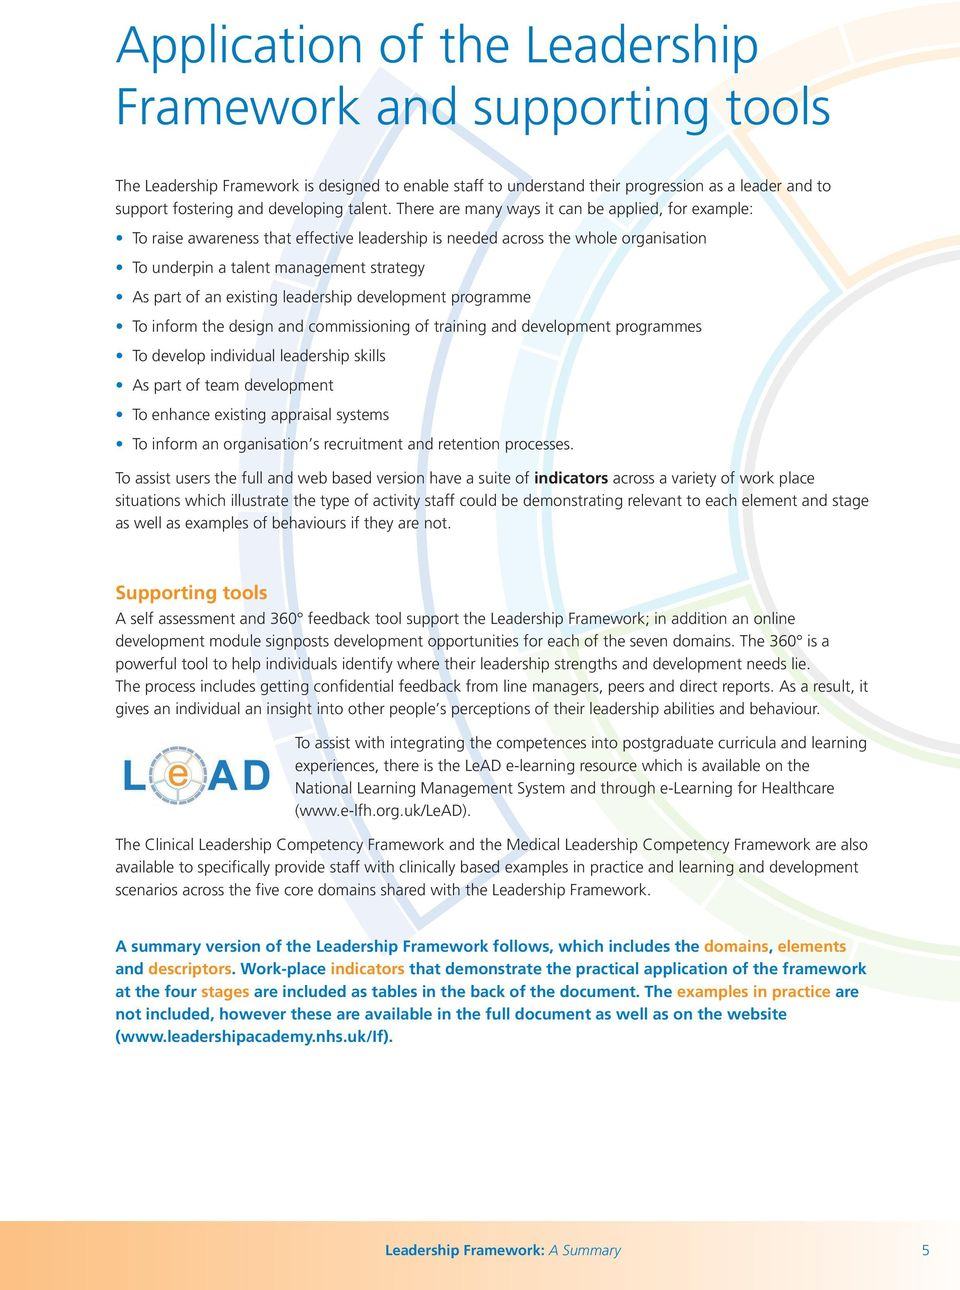 Leadership Academy Leadership Framework - PDF